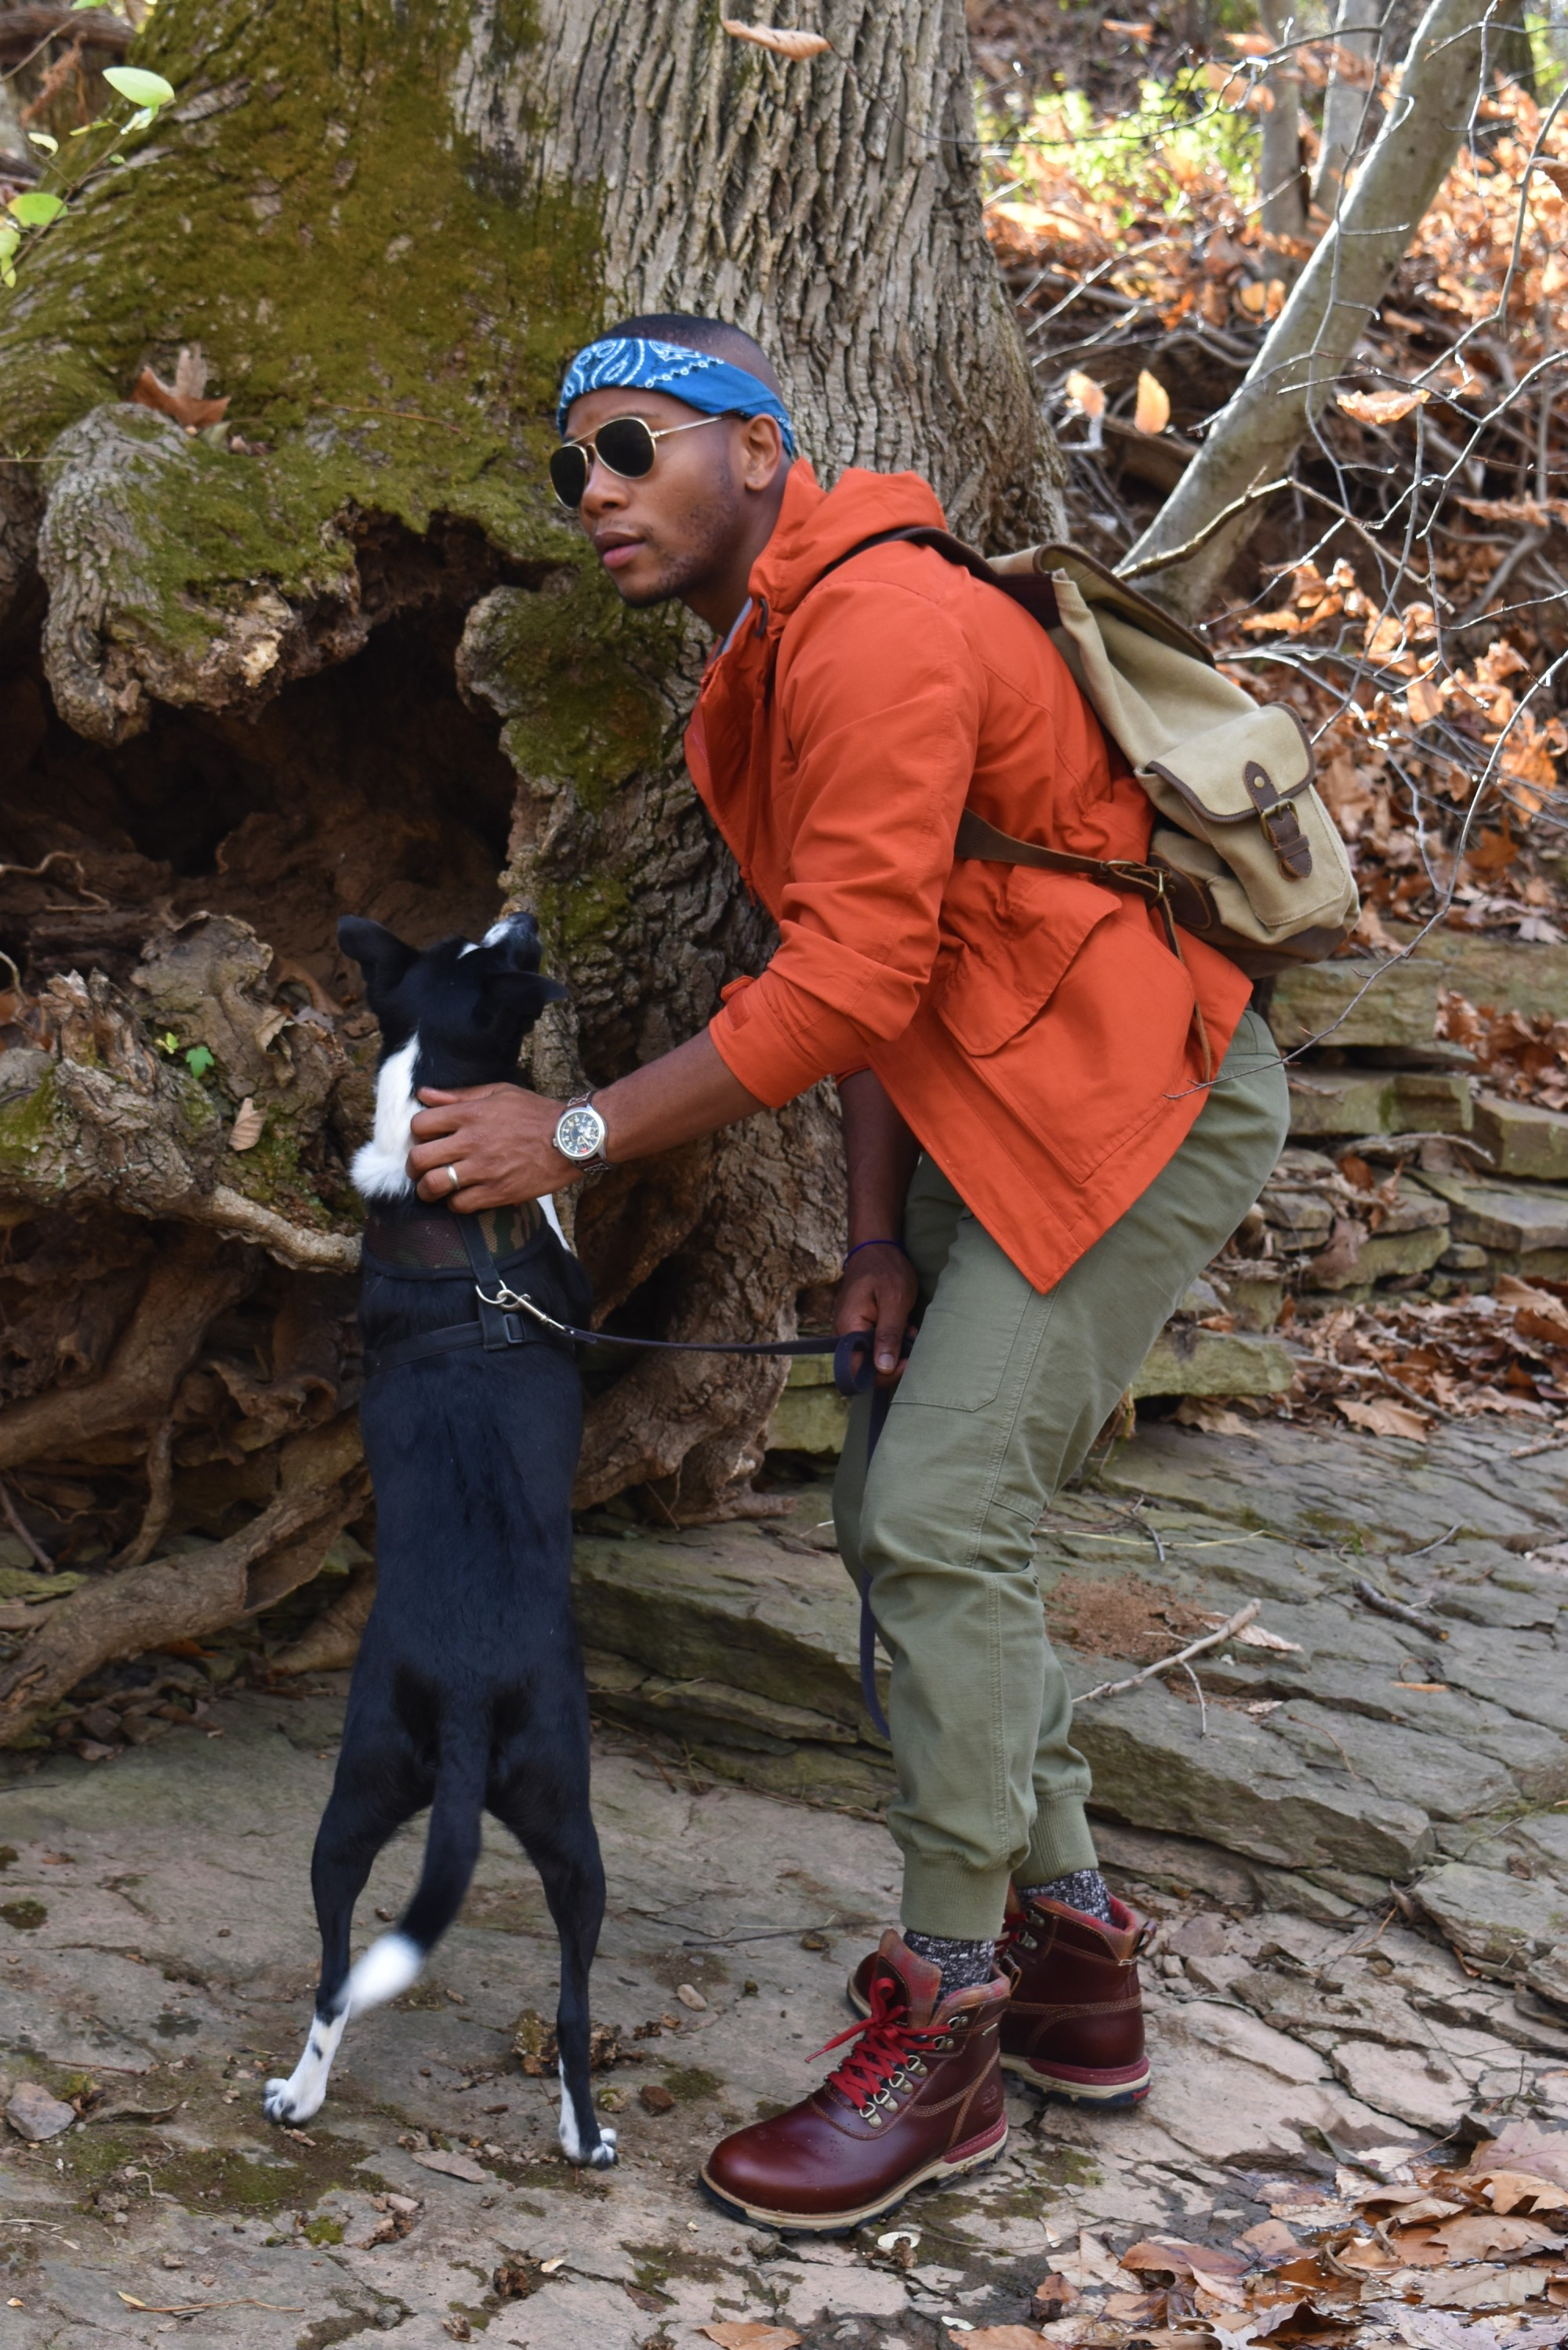 Sabir M. Peele of Men's Style Pro in Timberland Hiking Boots 21